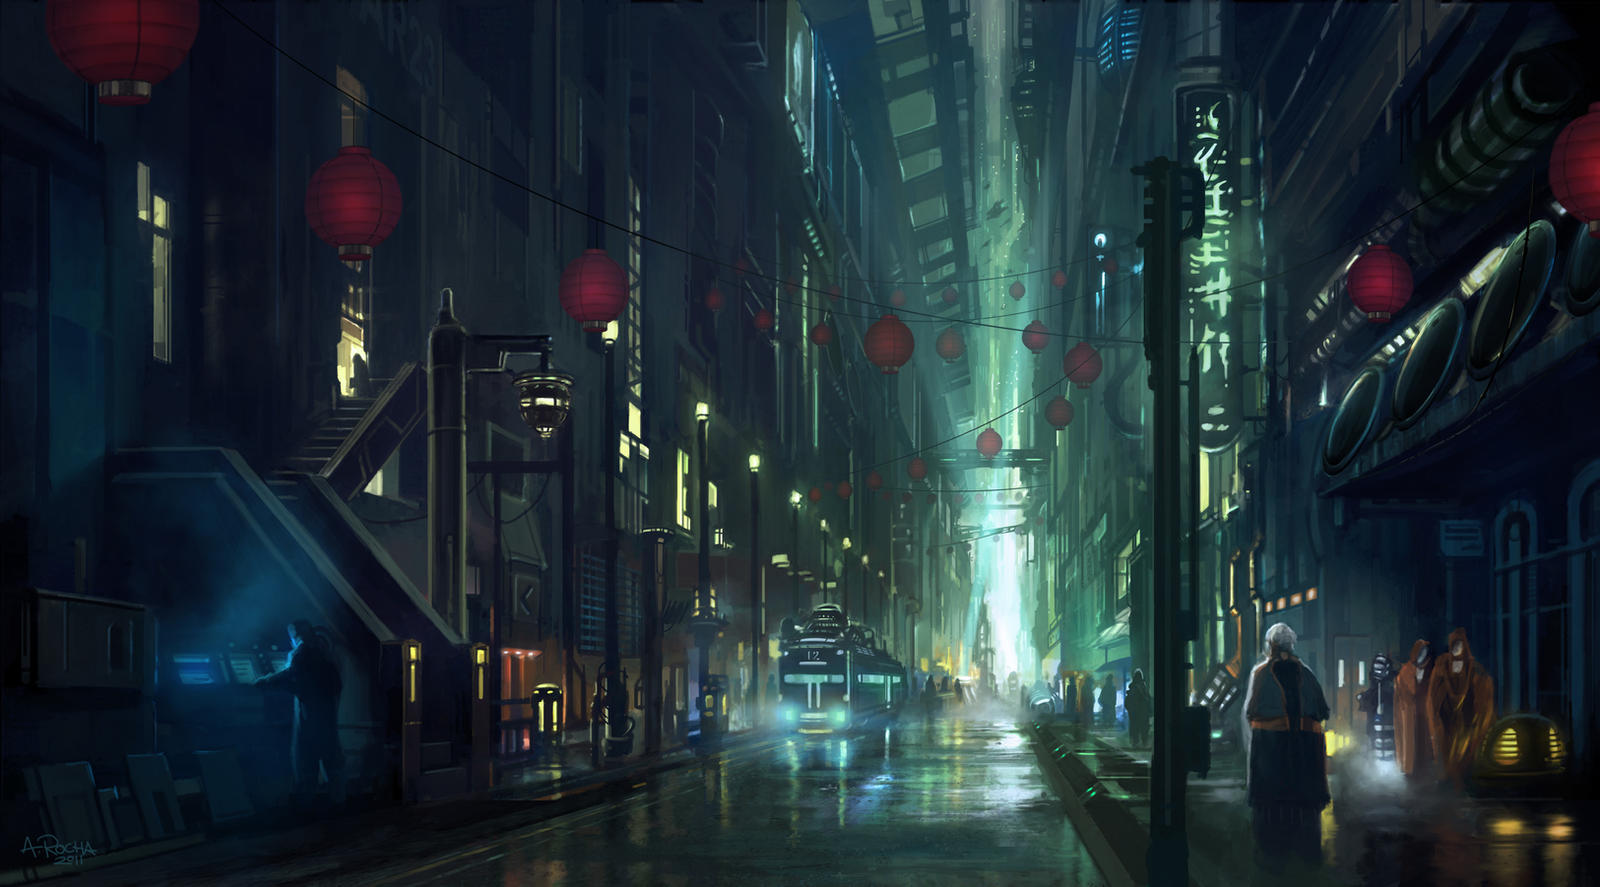 Endless Streets